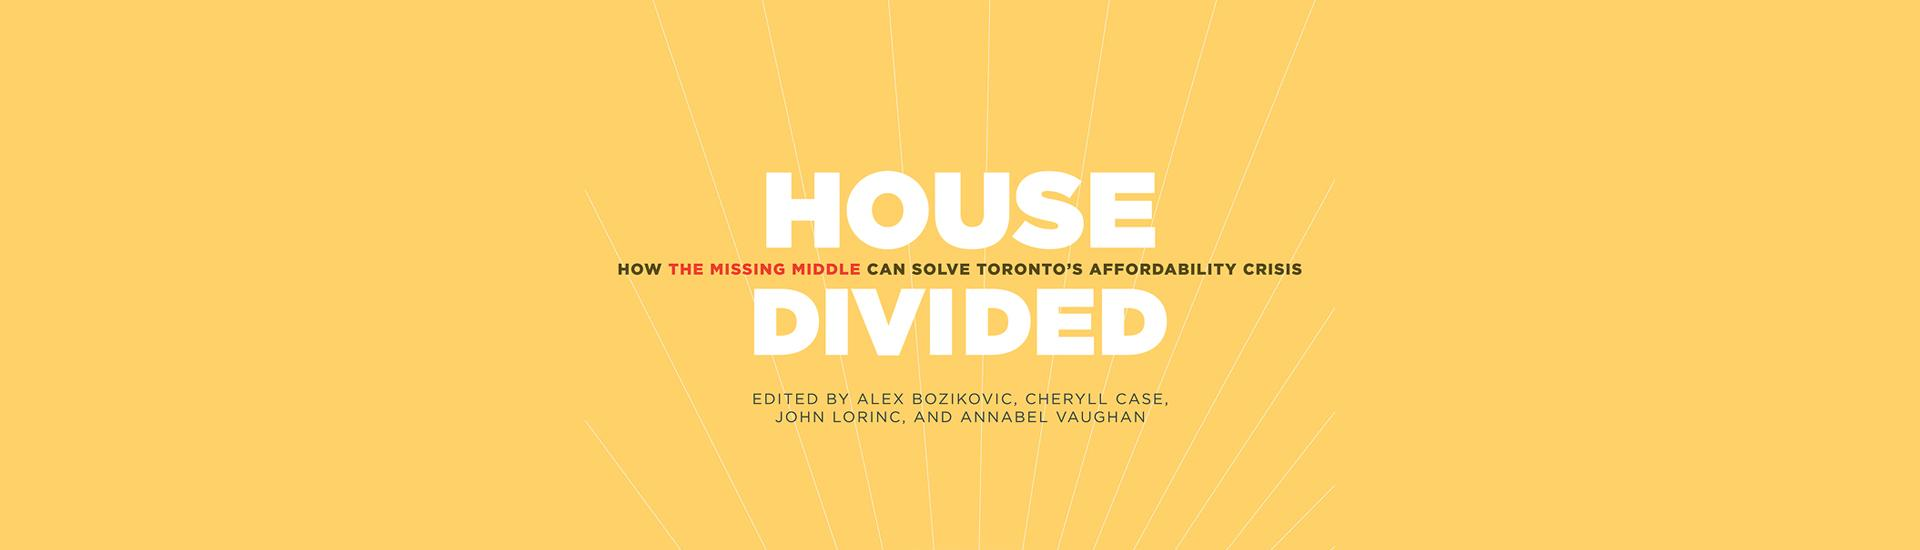 House Divided book cover